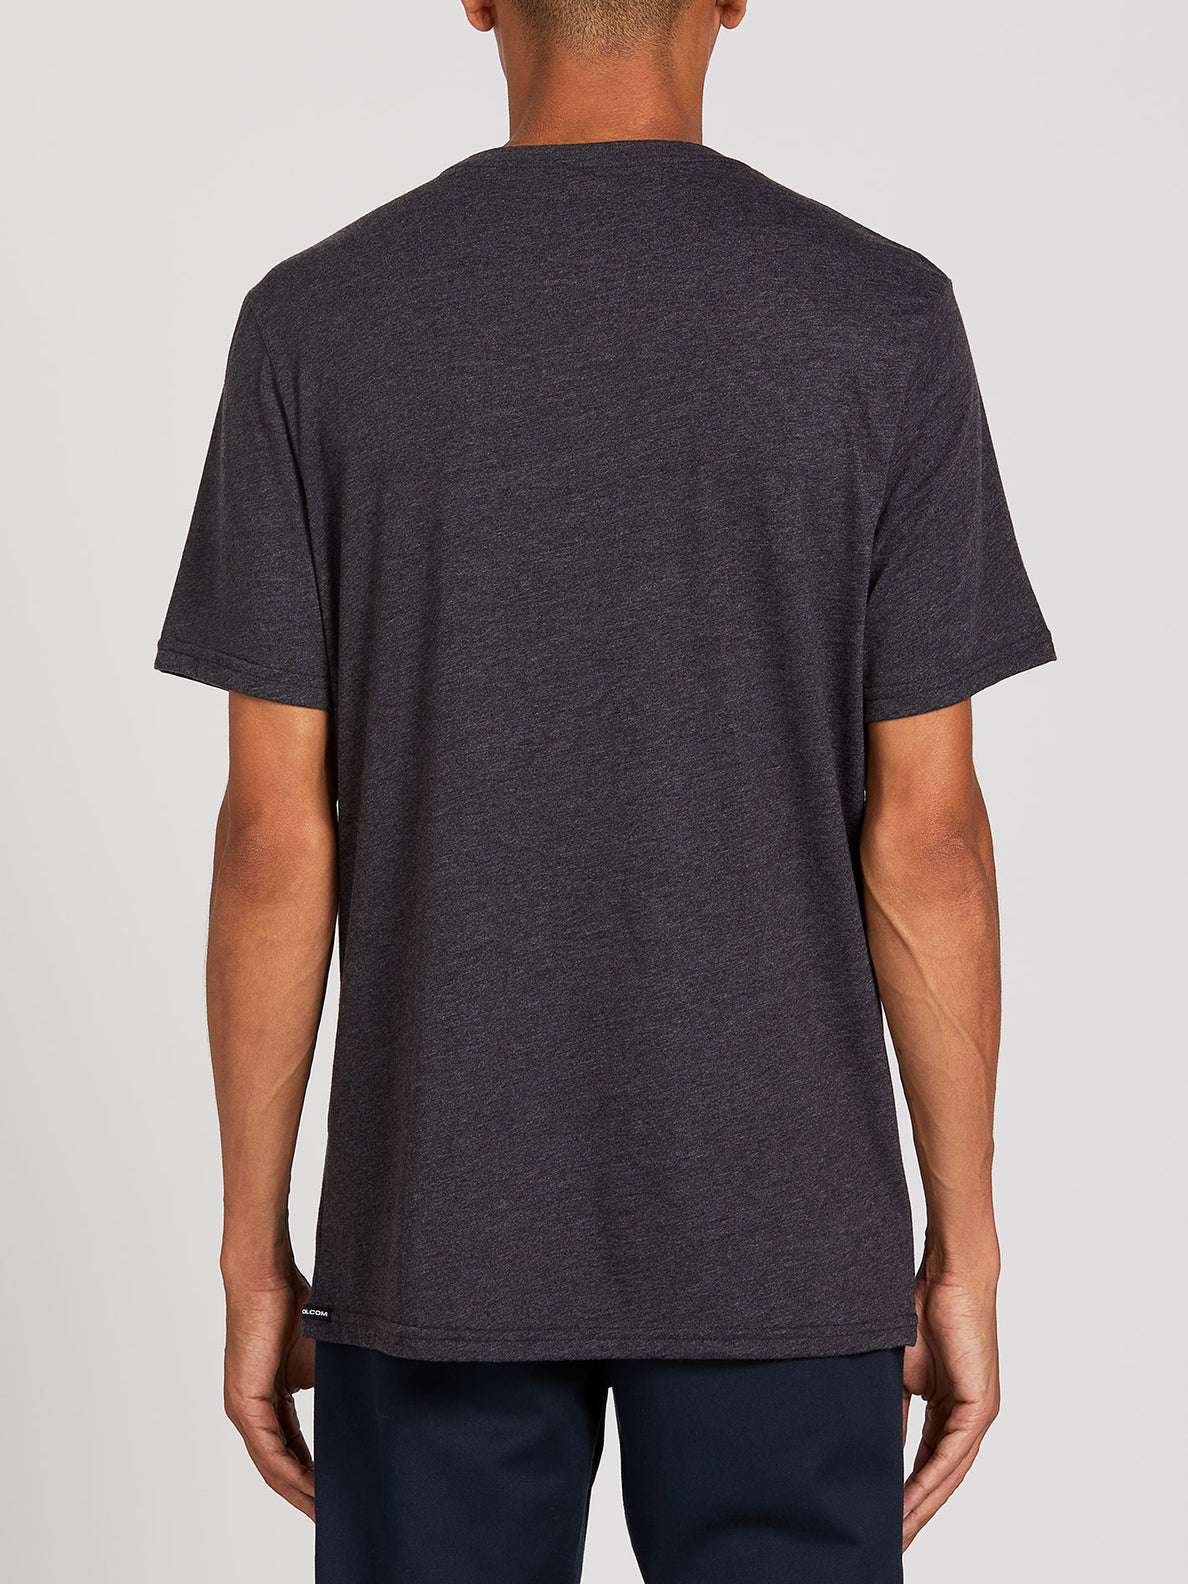 Expel Short Sleeve Tee - Heather Black (A5722001_HBK) [B]